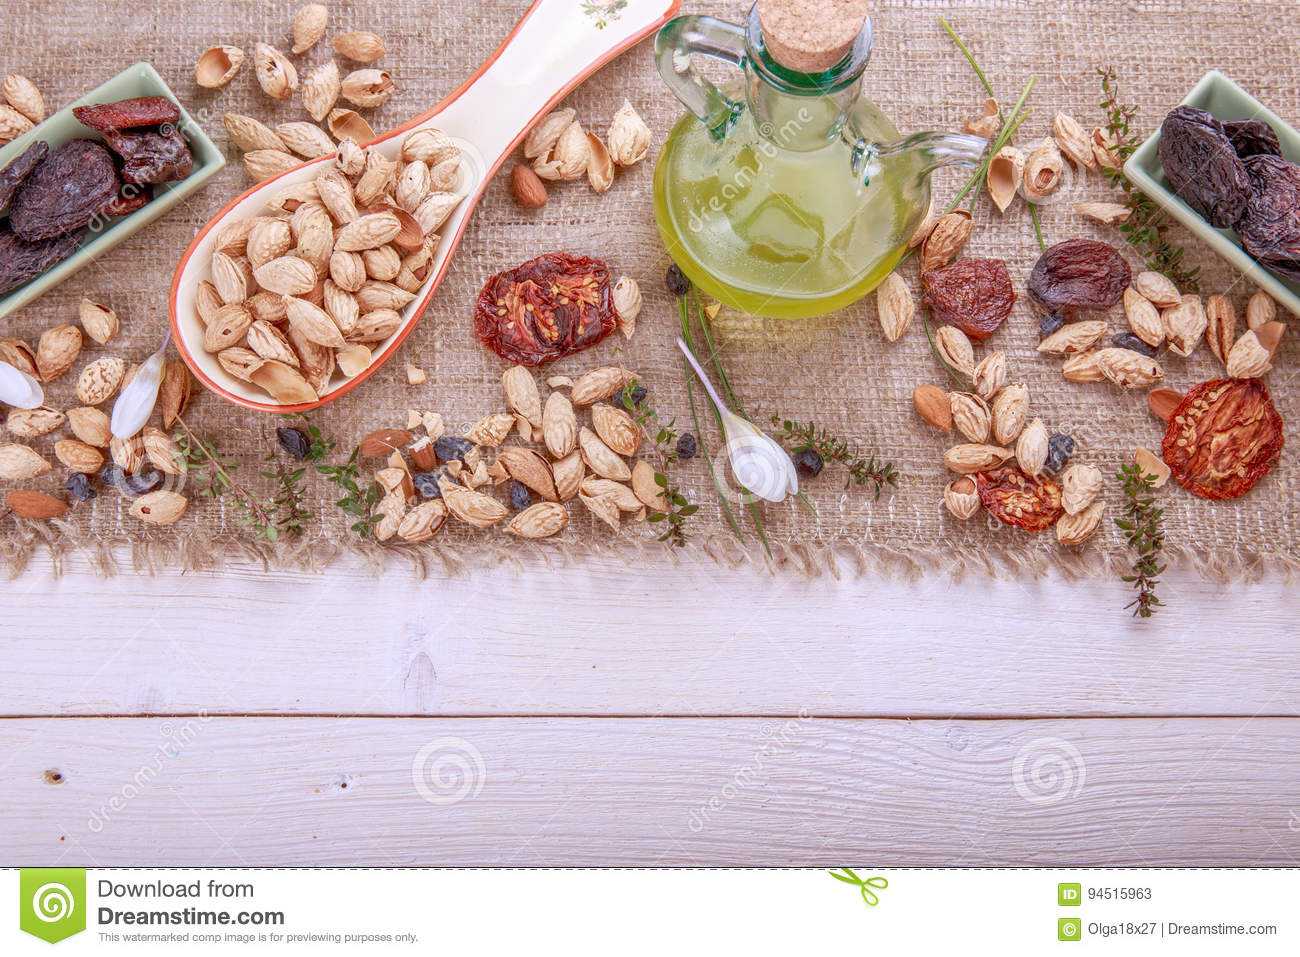 Prunes, dried apricots, raisins, almonds, dried tomatoes - handmade Bio products. Dried fruits, vegetables, nuts and